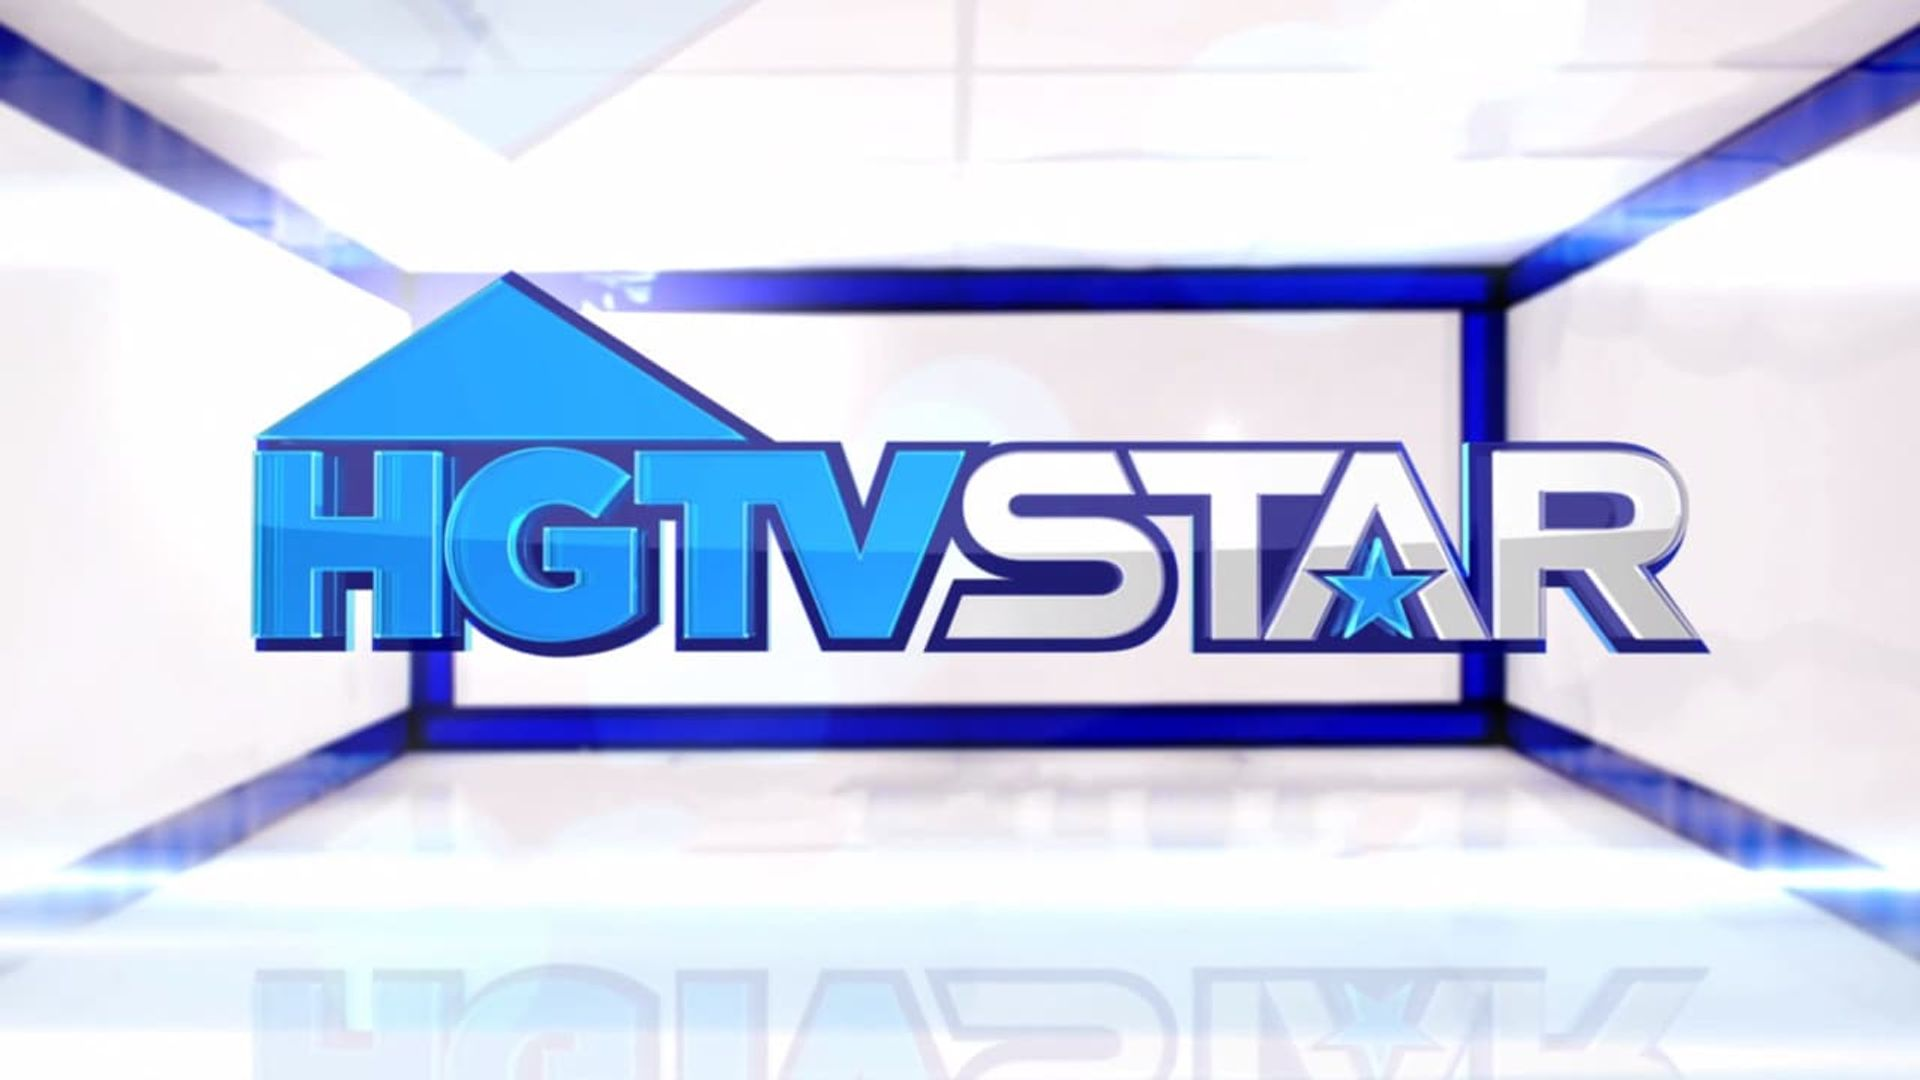 Hgtv Design Star Where To Watch Every Episode Streaming Online